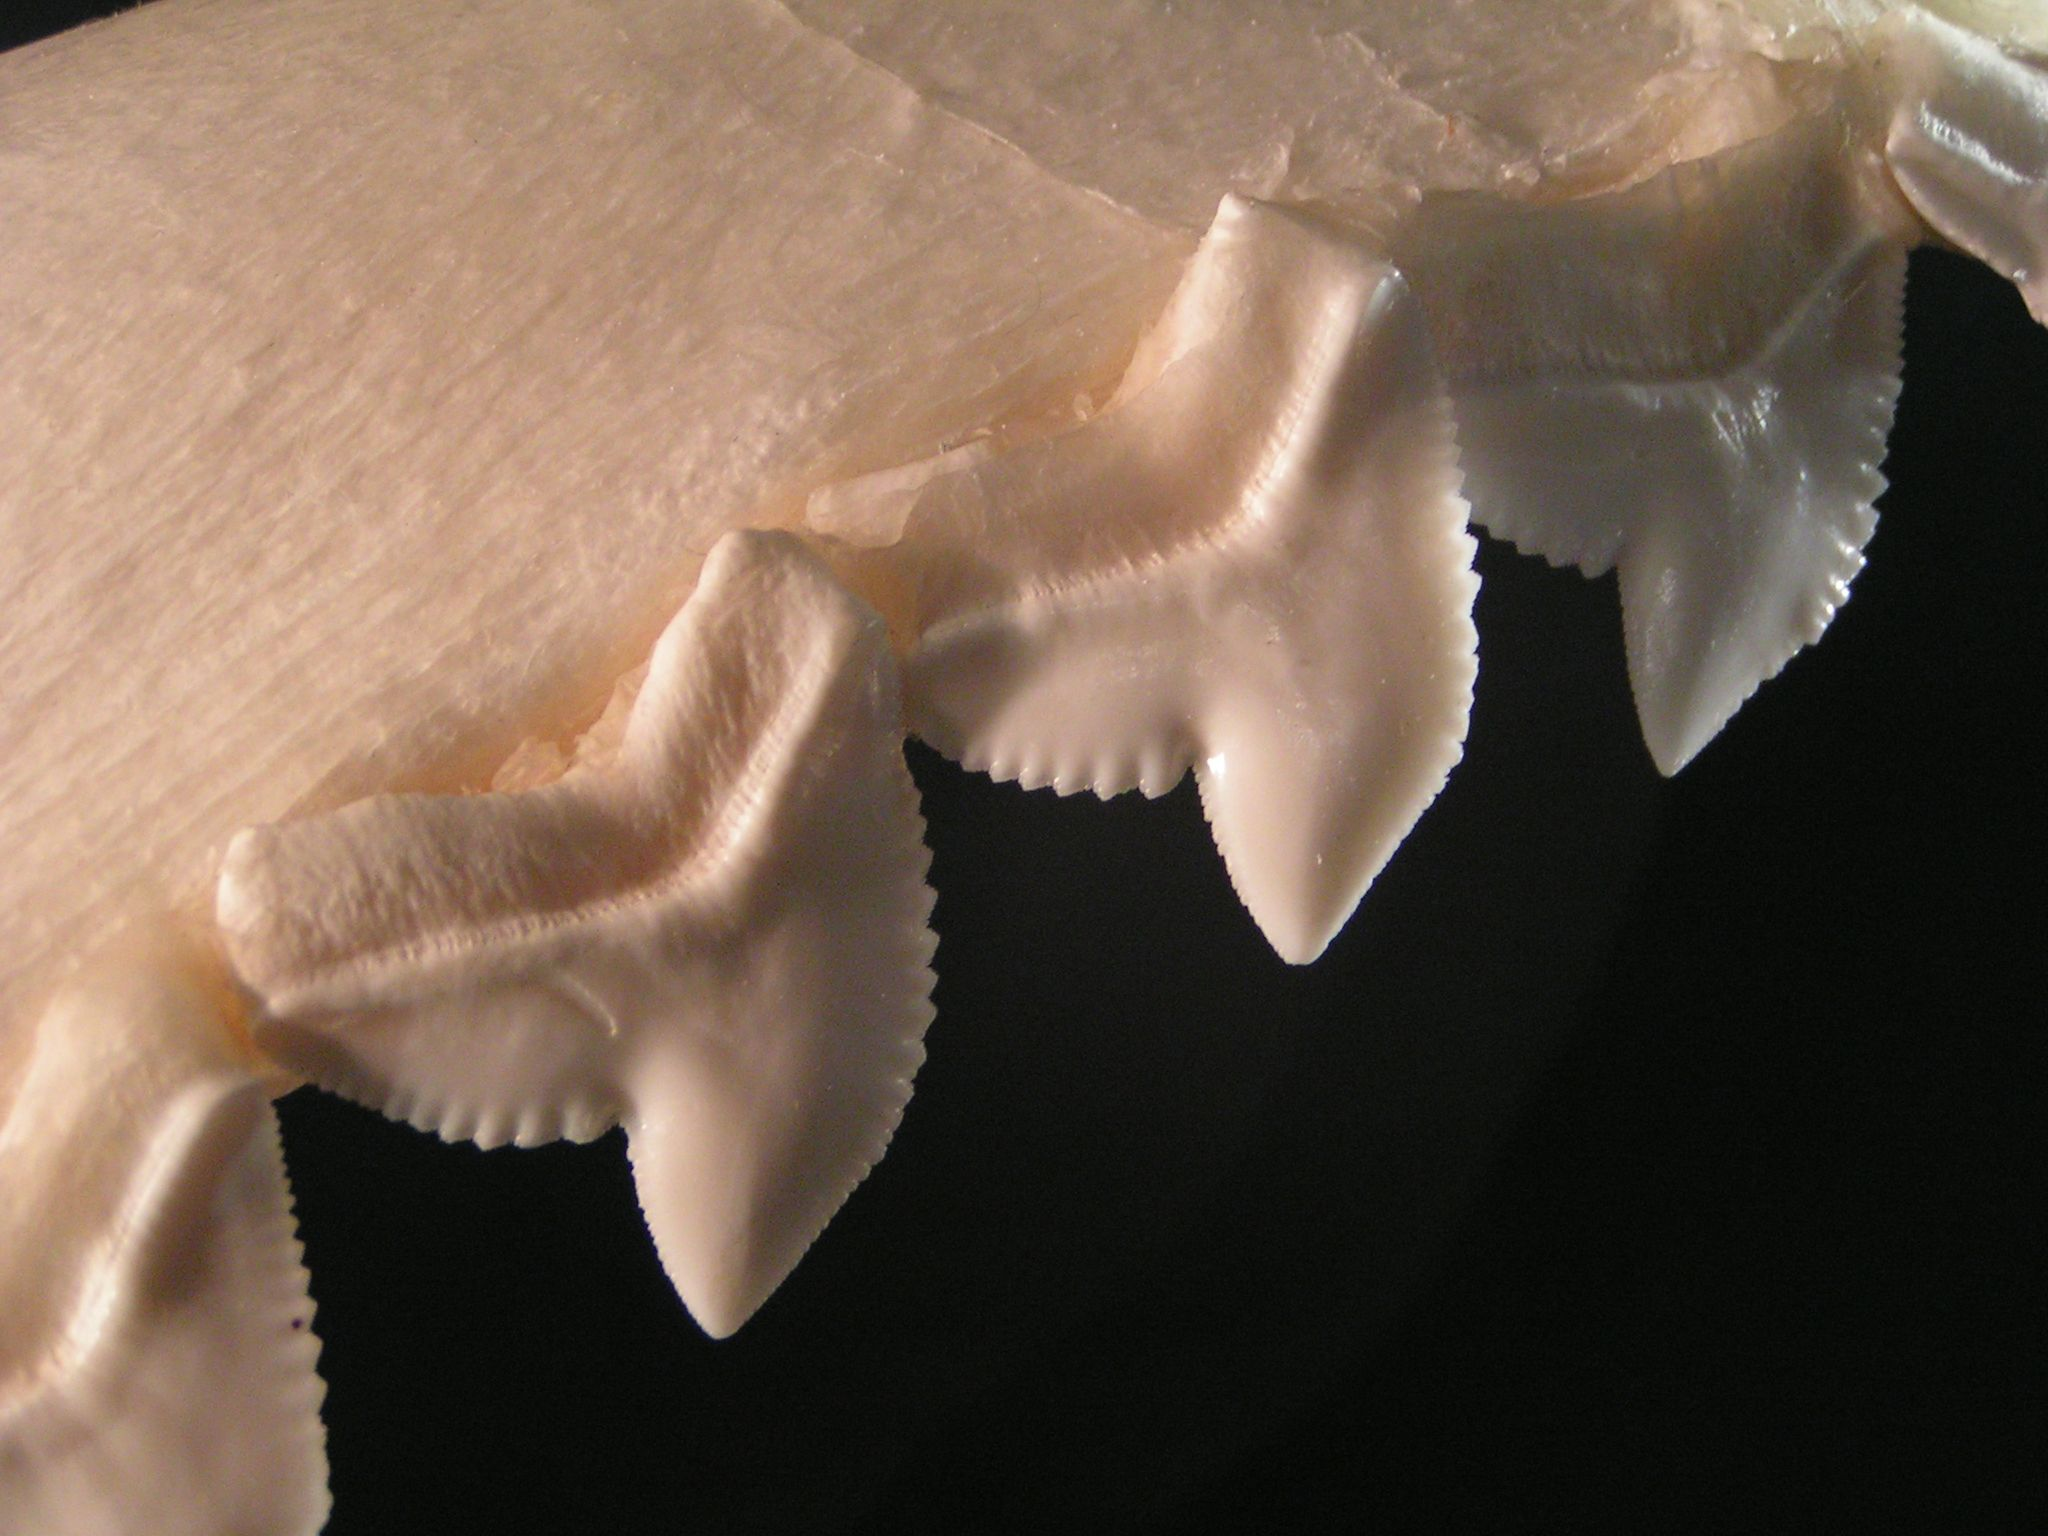 The serrated teeth of a tiger shark, used for sawing through flesh